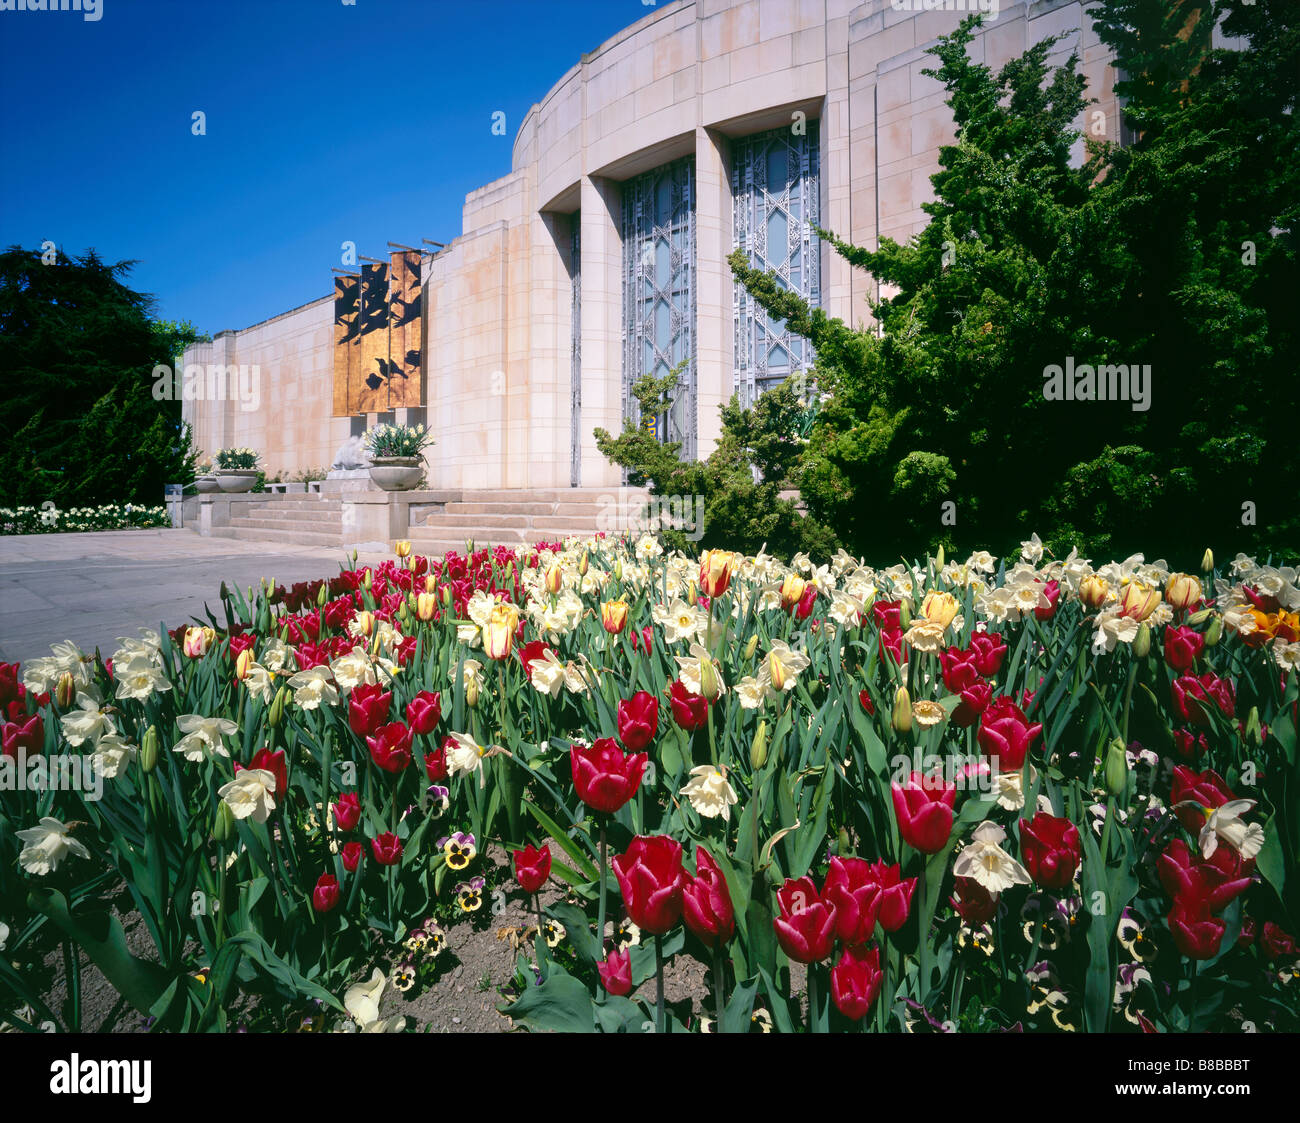 WASHINGTON - Tulips blooming at the Asian Art Museum in Volunteer Park on Capital Hill in Seattle. - Stock Image